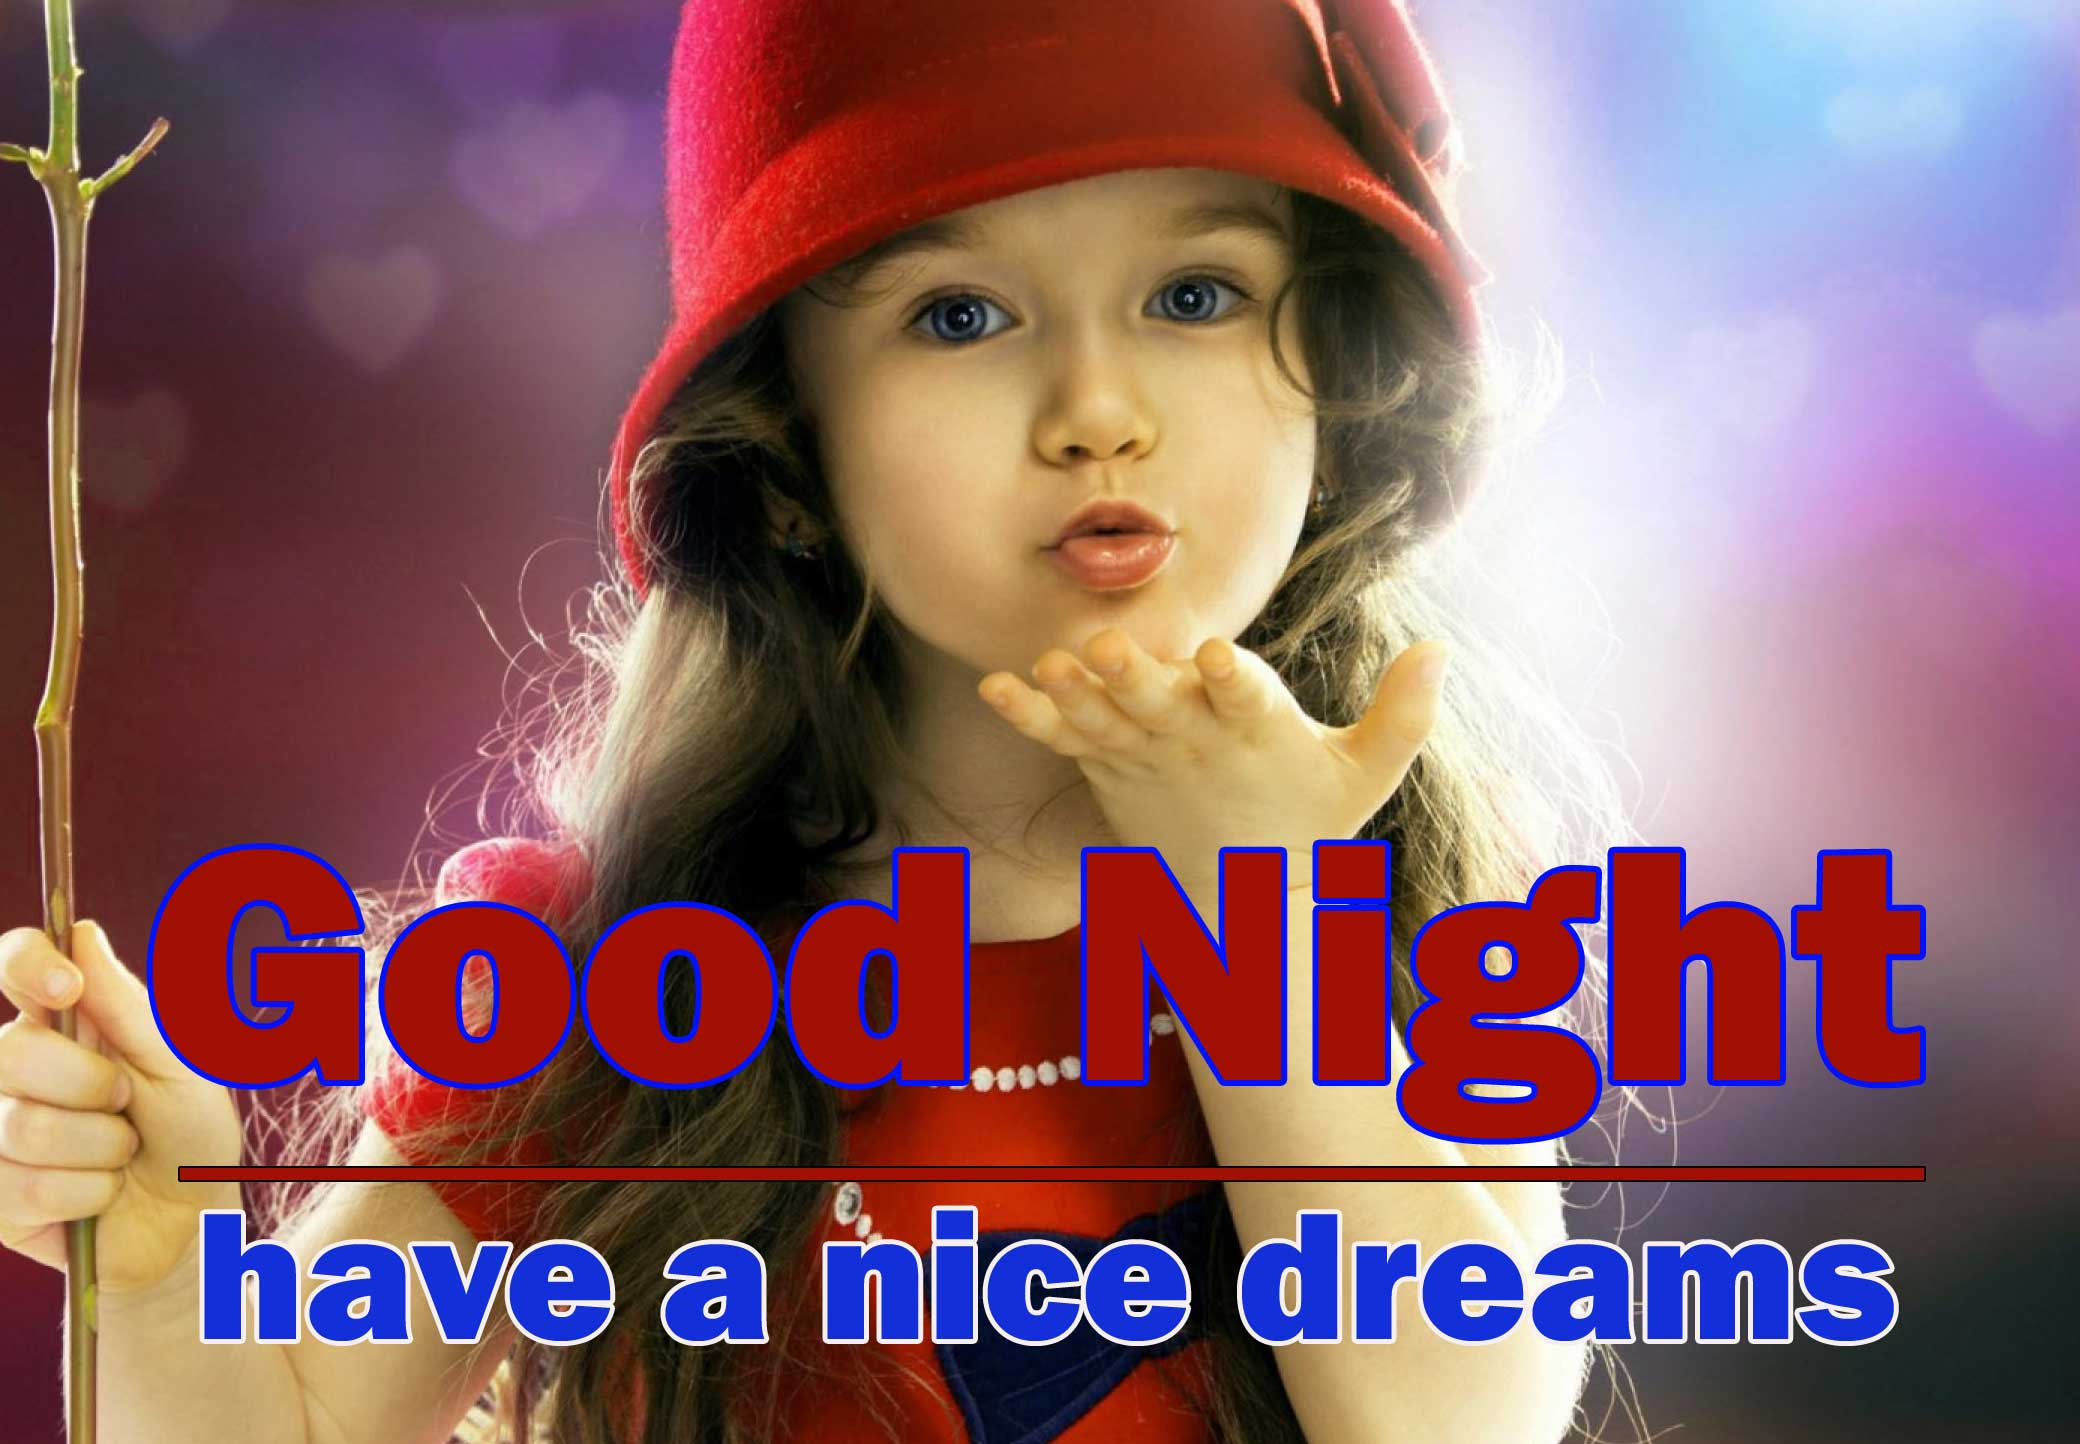 Cute Good Night Wallpaper Download 8